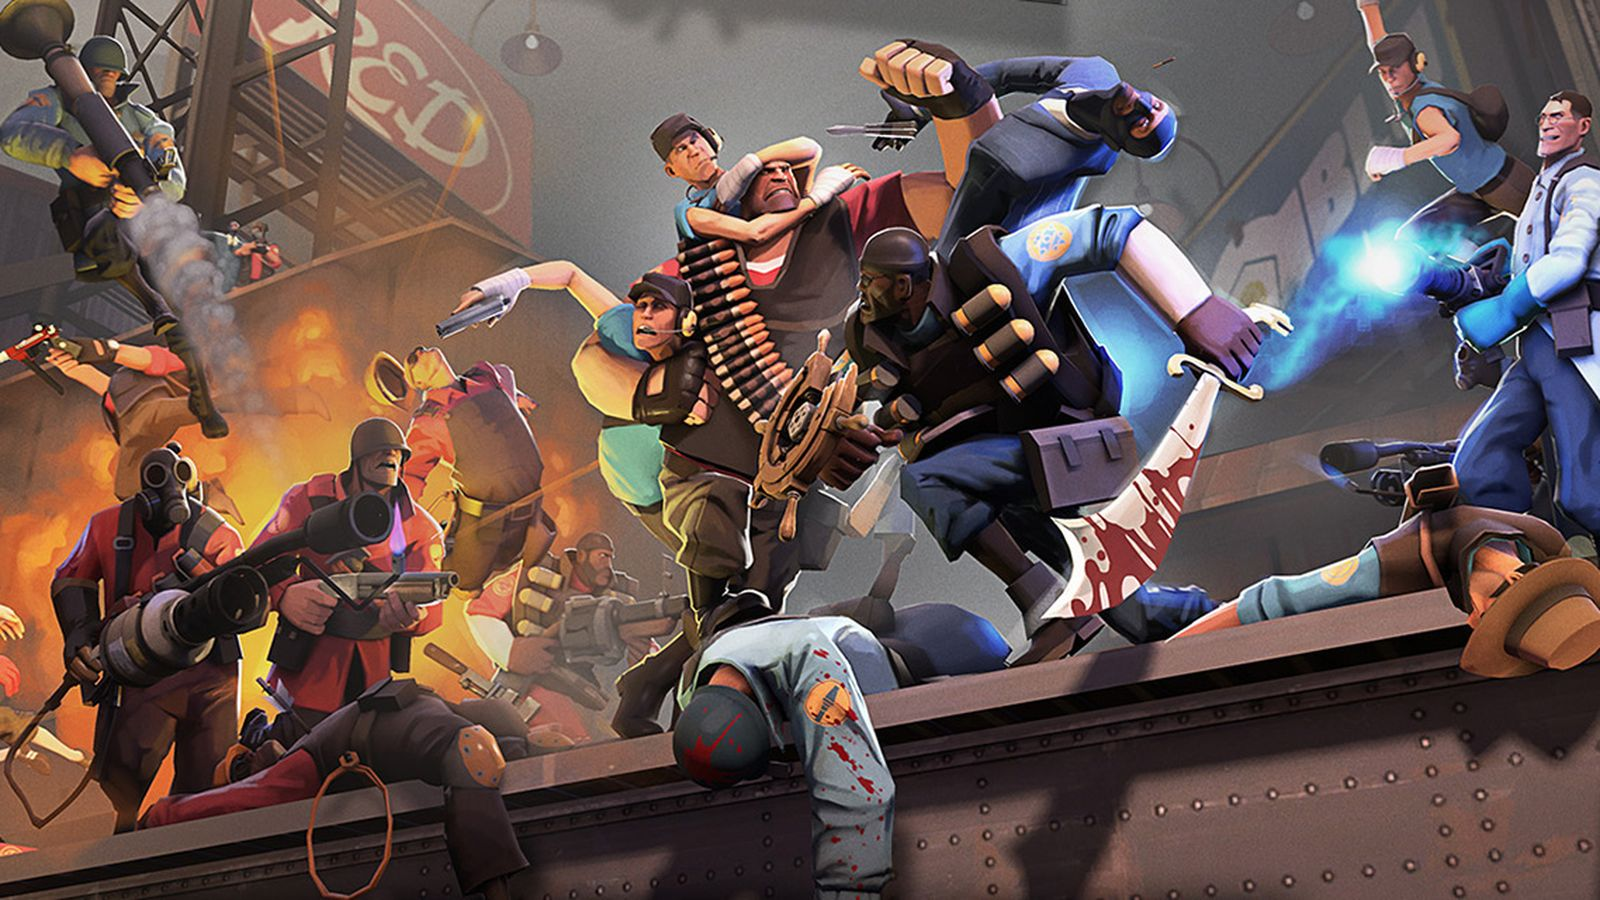 TF2 celebrates its 10th anniversary